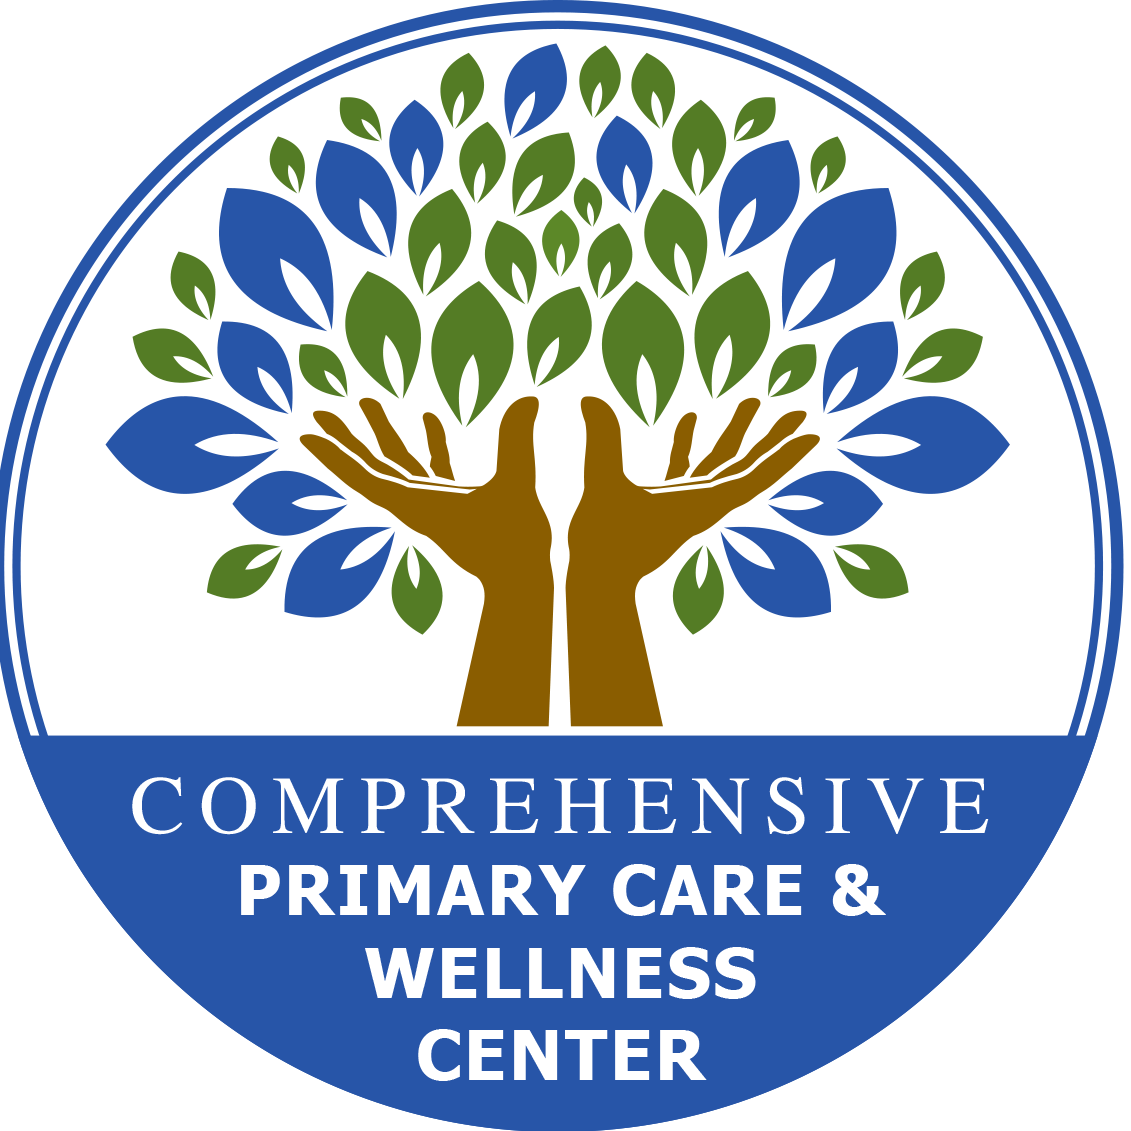 Comprehensive Primary Care and Wellness Center